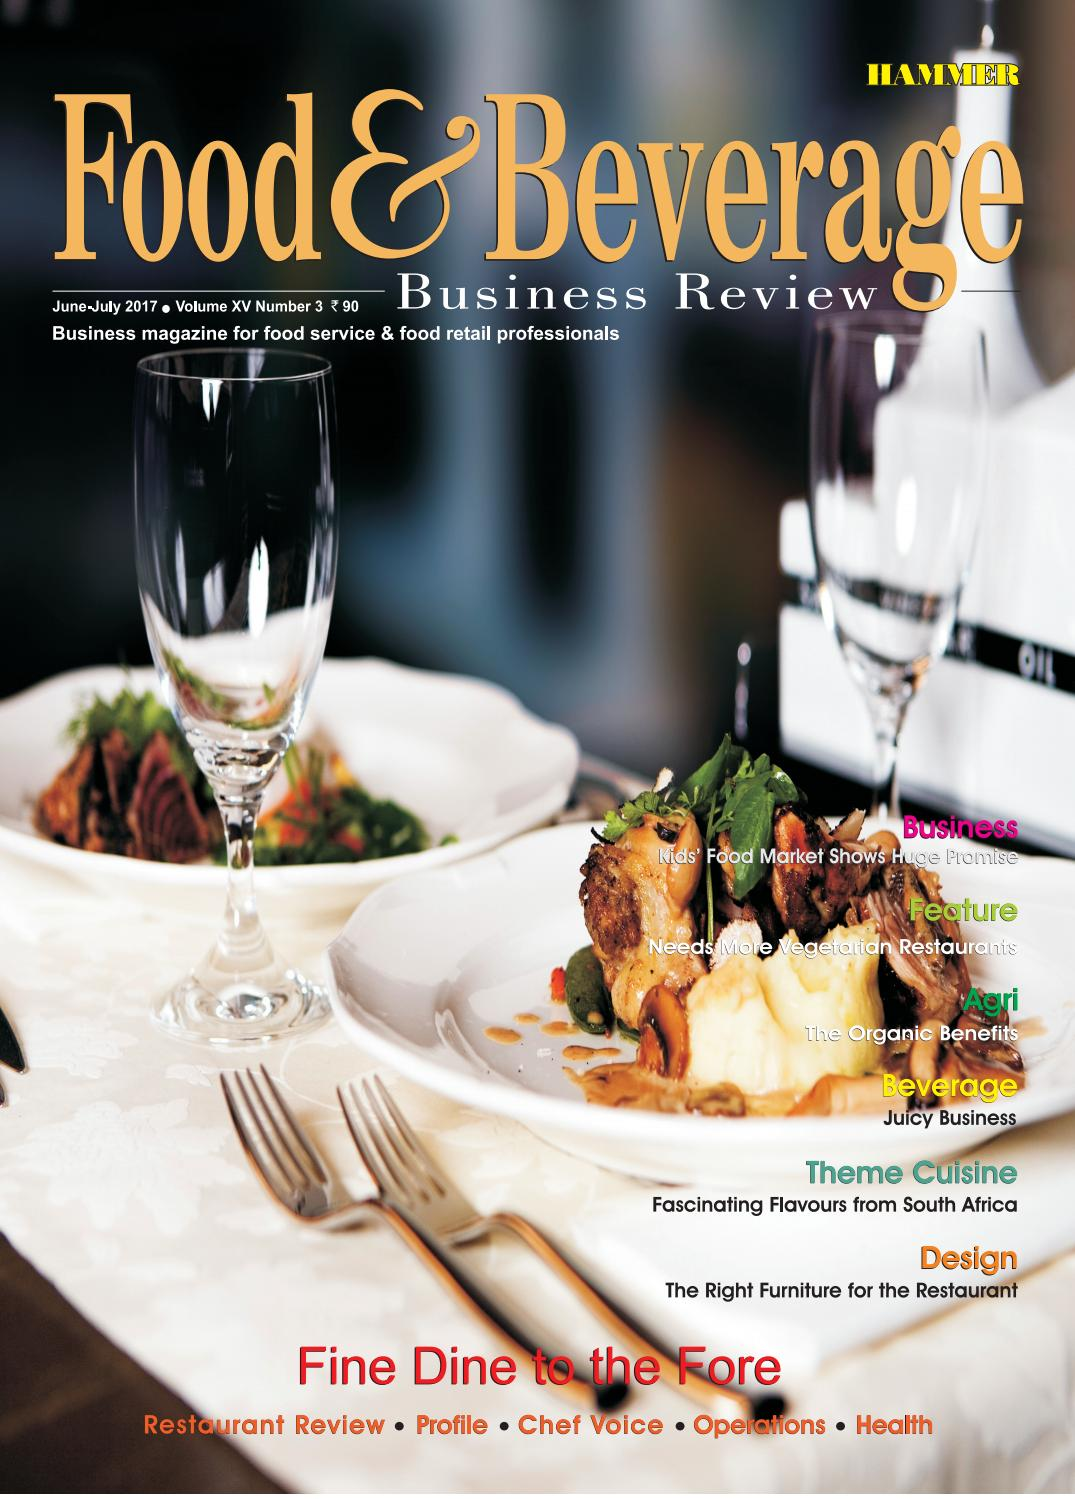 Food & Beverage Business Review - June July 17 by Food